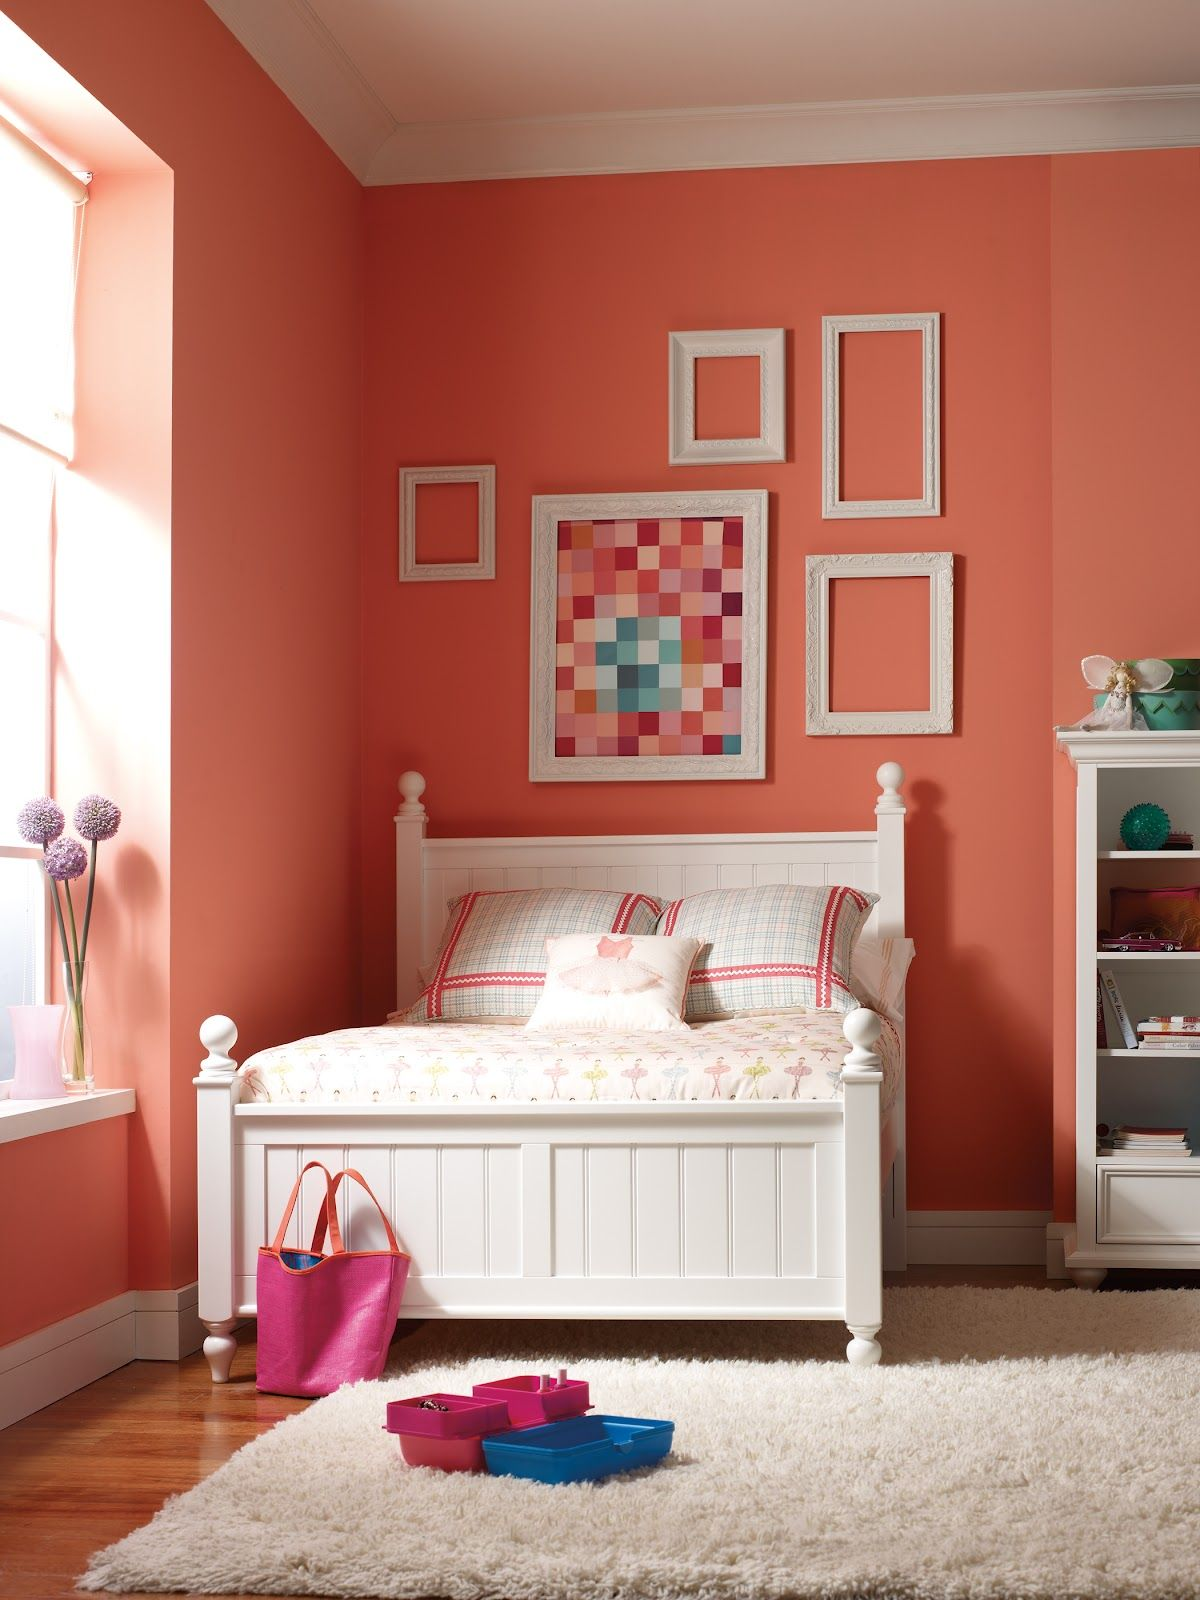 what color to compliments cream colored painted walls trendy colors coral home design - Trendy Furniture Colors